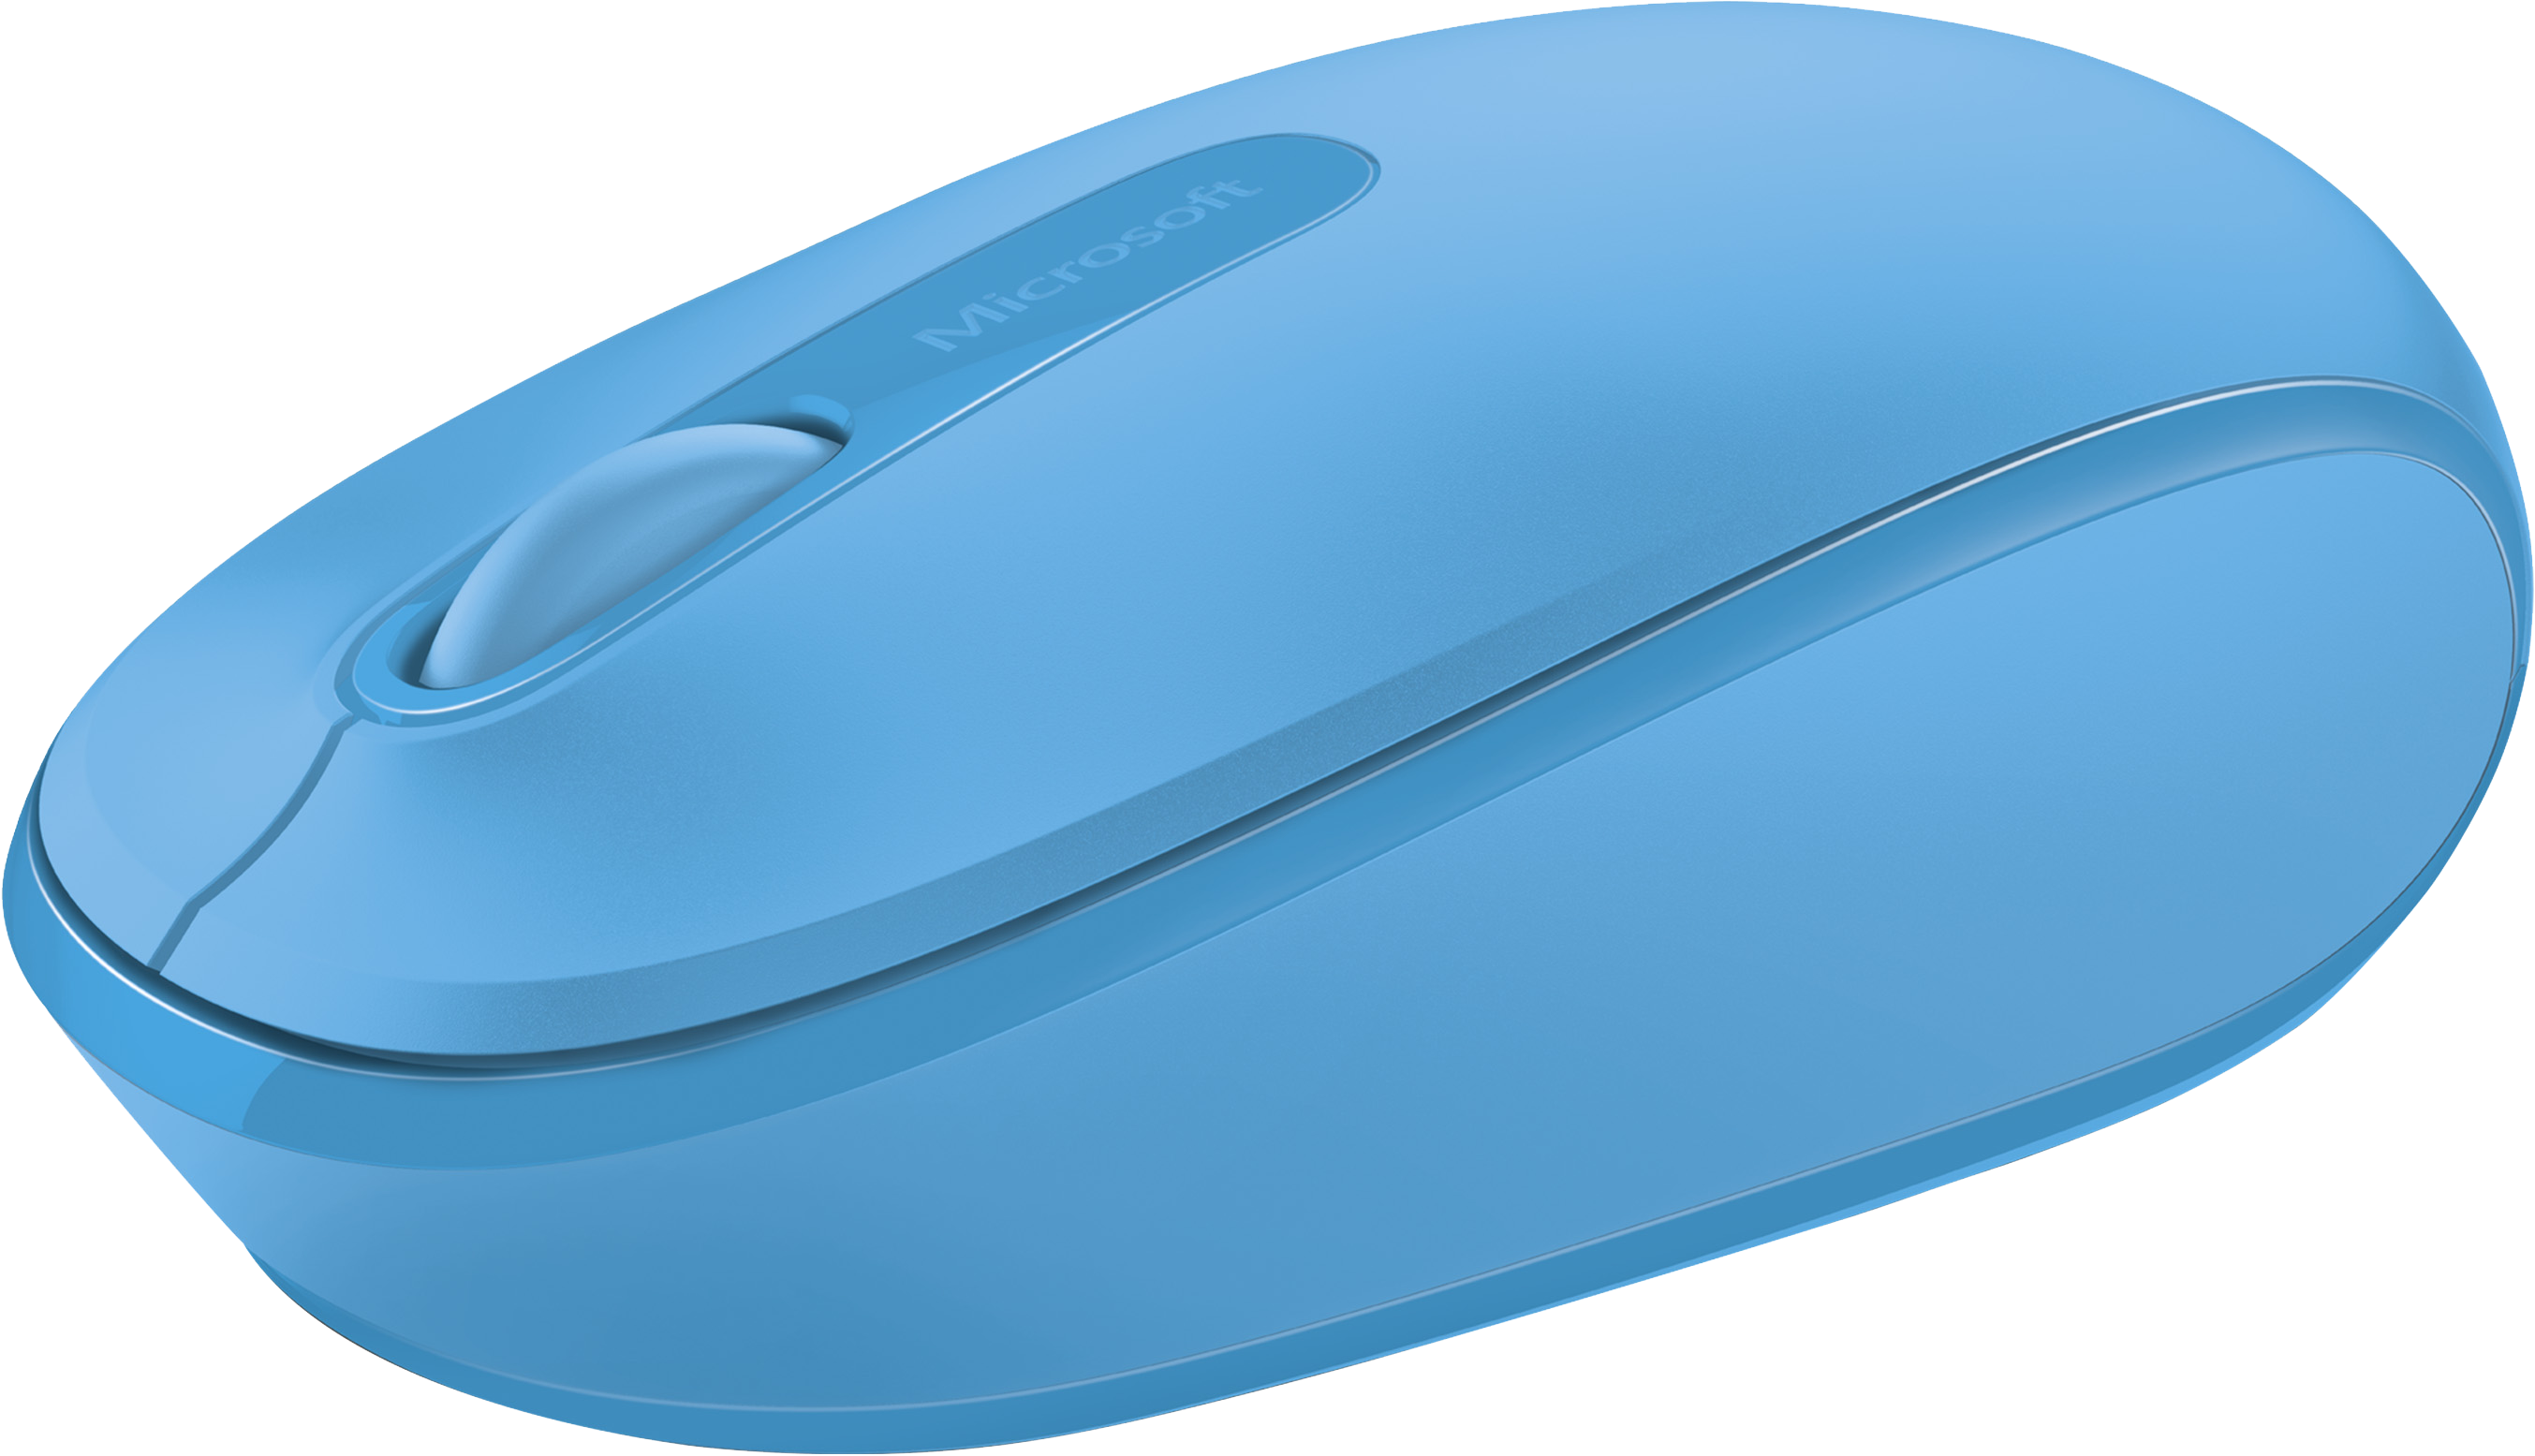 microsoft-wireless-mobile-mouse-1850-cyan-blue